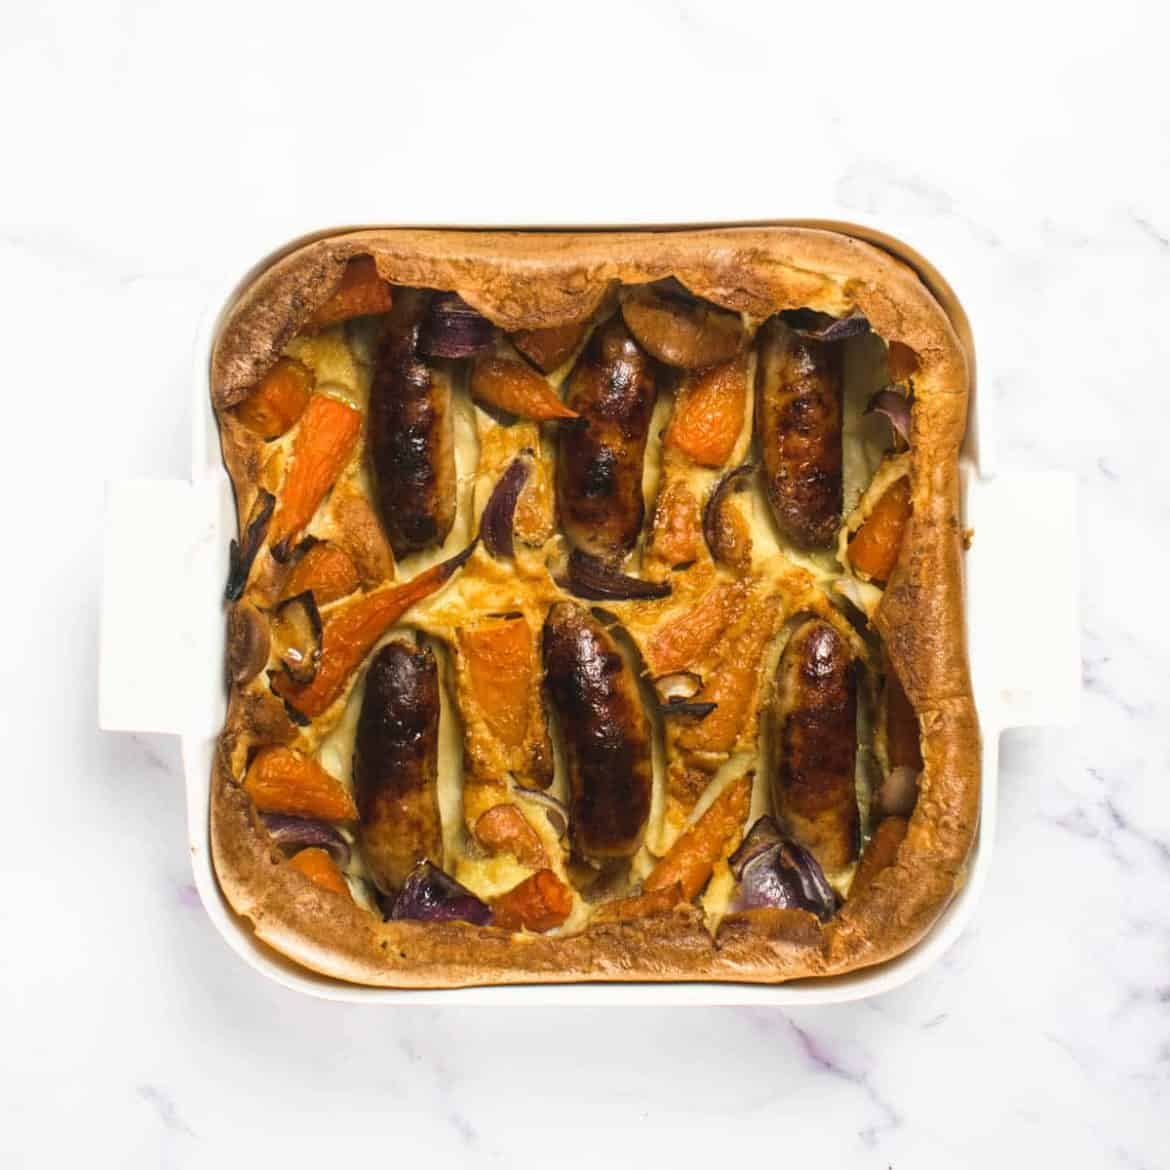 Toad in the hole tray bake